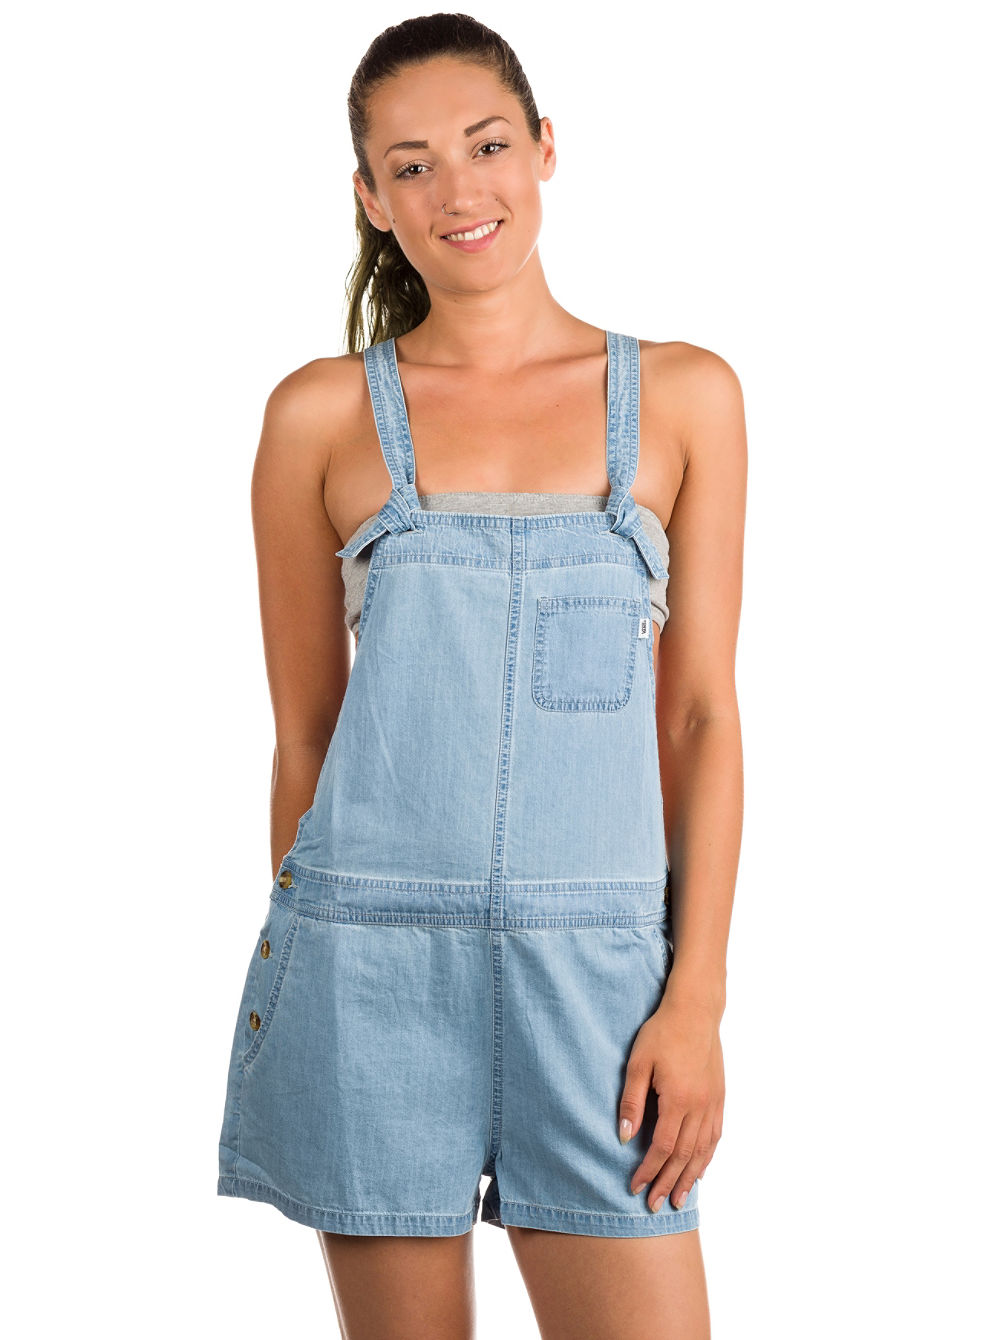 Gulf Coast Denim Short Jumpsuit